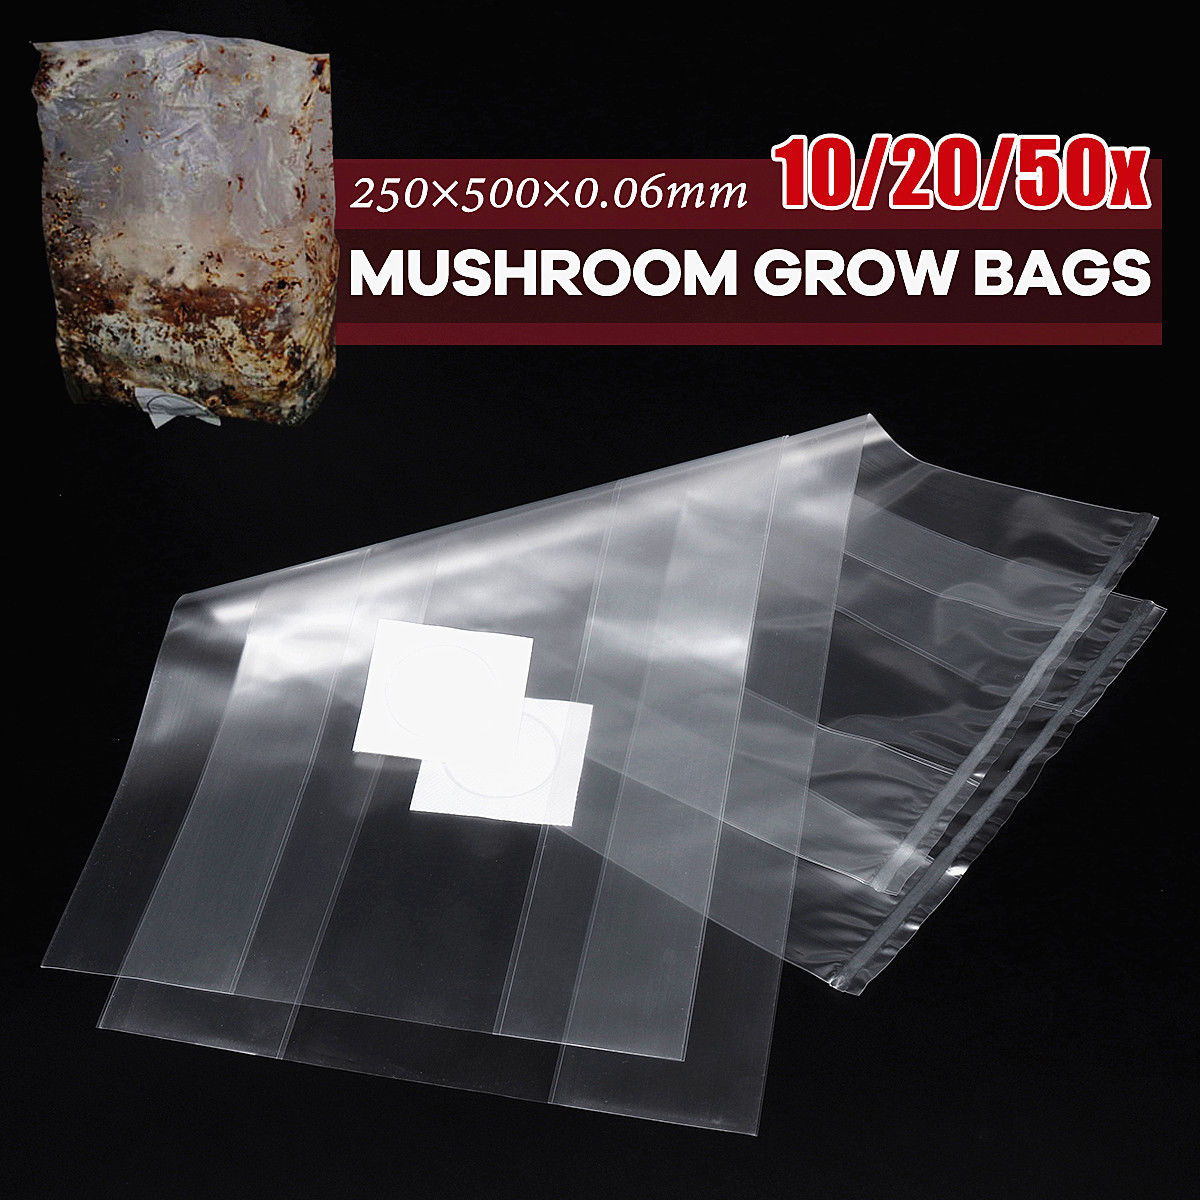 10/20/50pcs 10*20 Inch PVC Mushroom Spawn Grow Bag Substrate Hight Temp Pre Sealable Garden Supplies Grow Bags